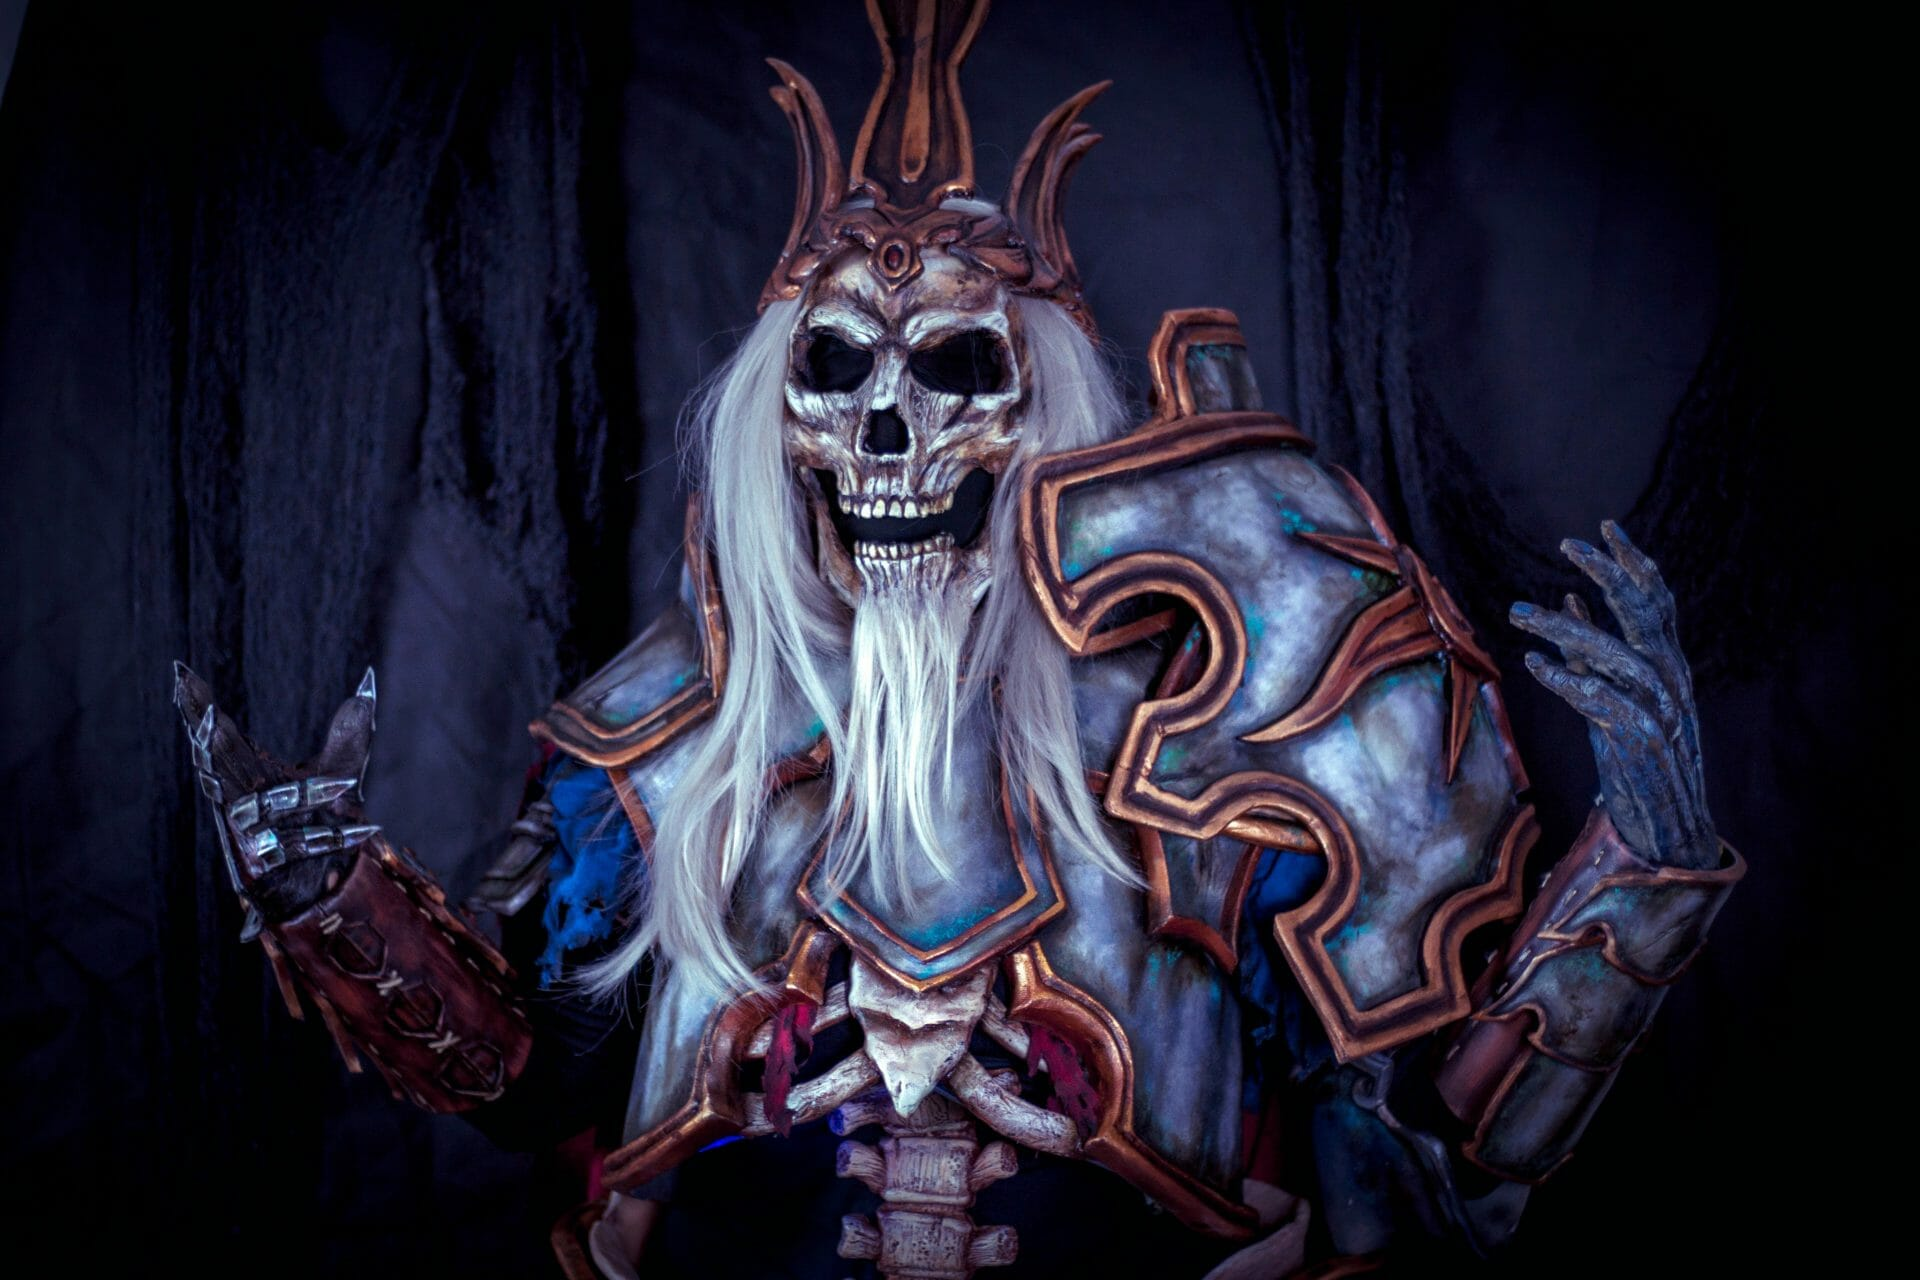 Leoric - The Mad King from Diablo